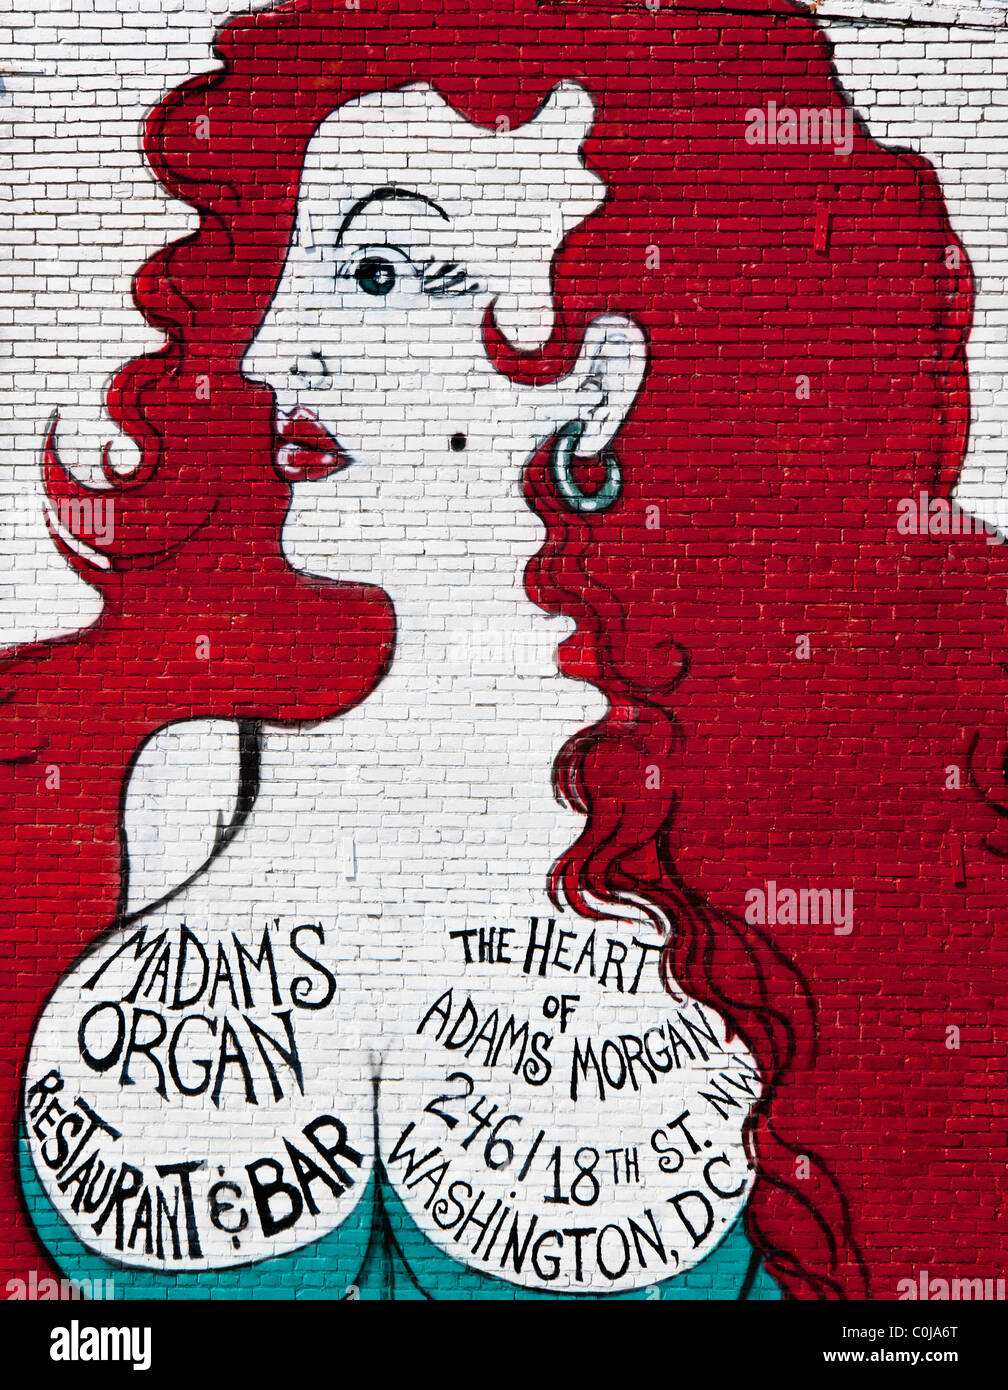 landmark-mural-of-a-buxom-lady-on-the-side-of-club-madams-organ-on-C0JA6T.jpg